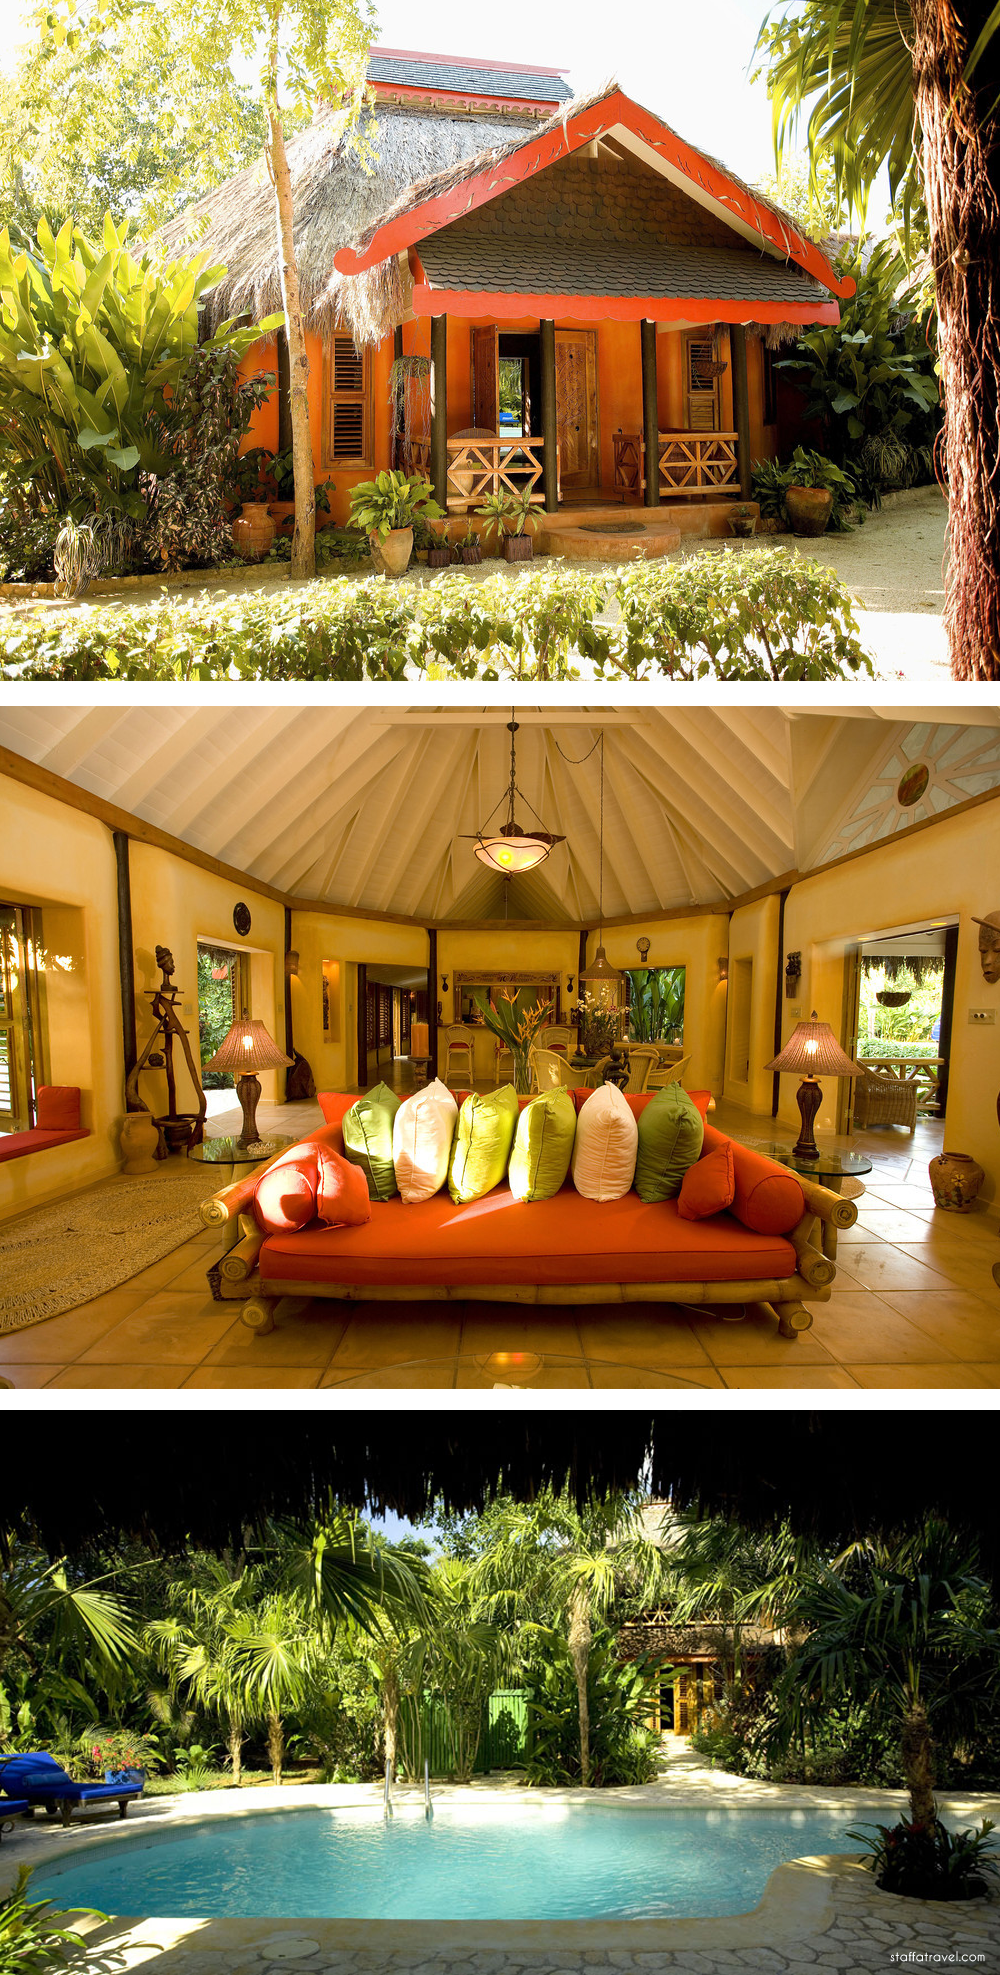 clandestino-luxury-villa-the-caves-negril-jamaica-caribbean-villas-1